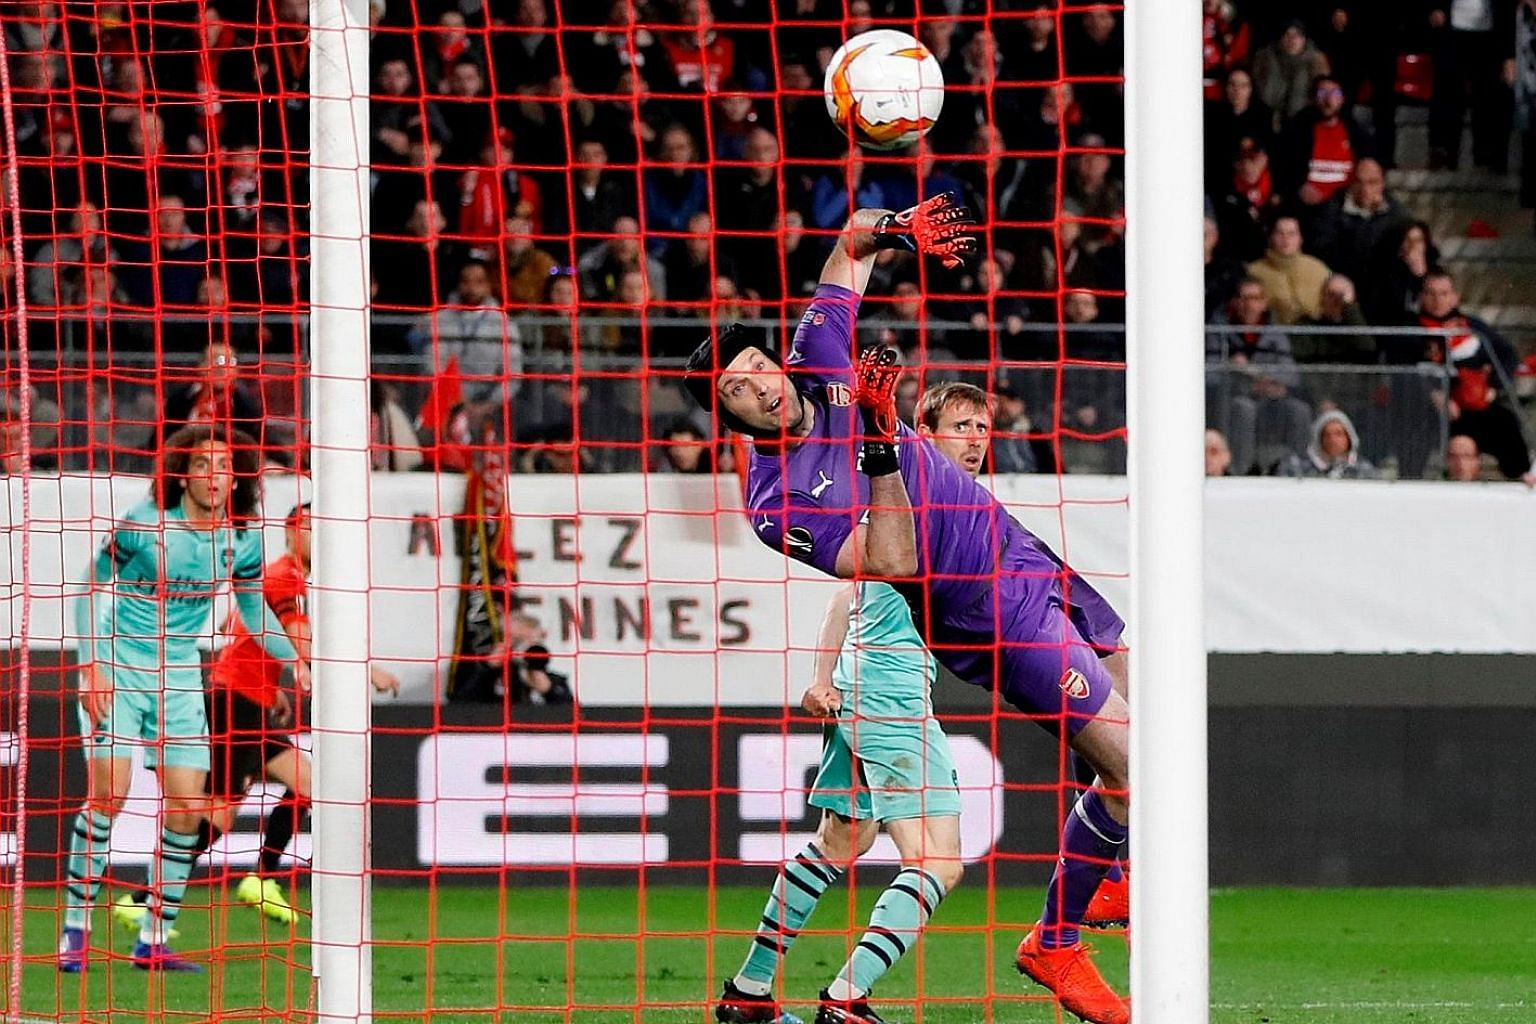 Arsenal's Nacho Monreal turning a cross past his own custodian Petr Cech and into goal for Rennes to lead 2-1 in their Europa League last-16 first leg at Roazhon Park. The French Ligue 1 side lead 3-1 on aggregate.